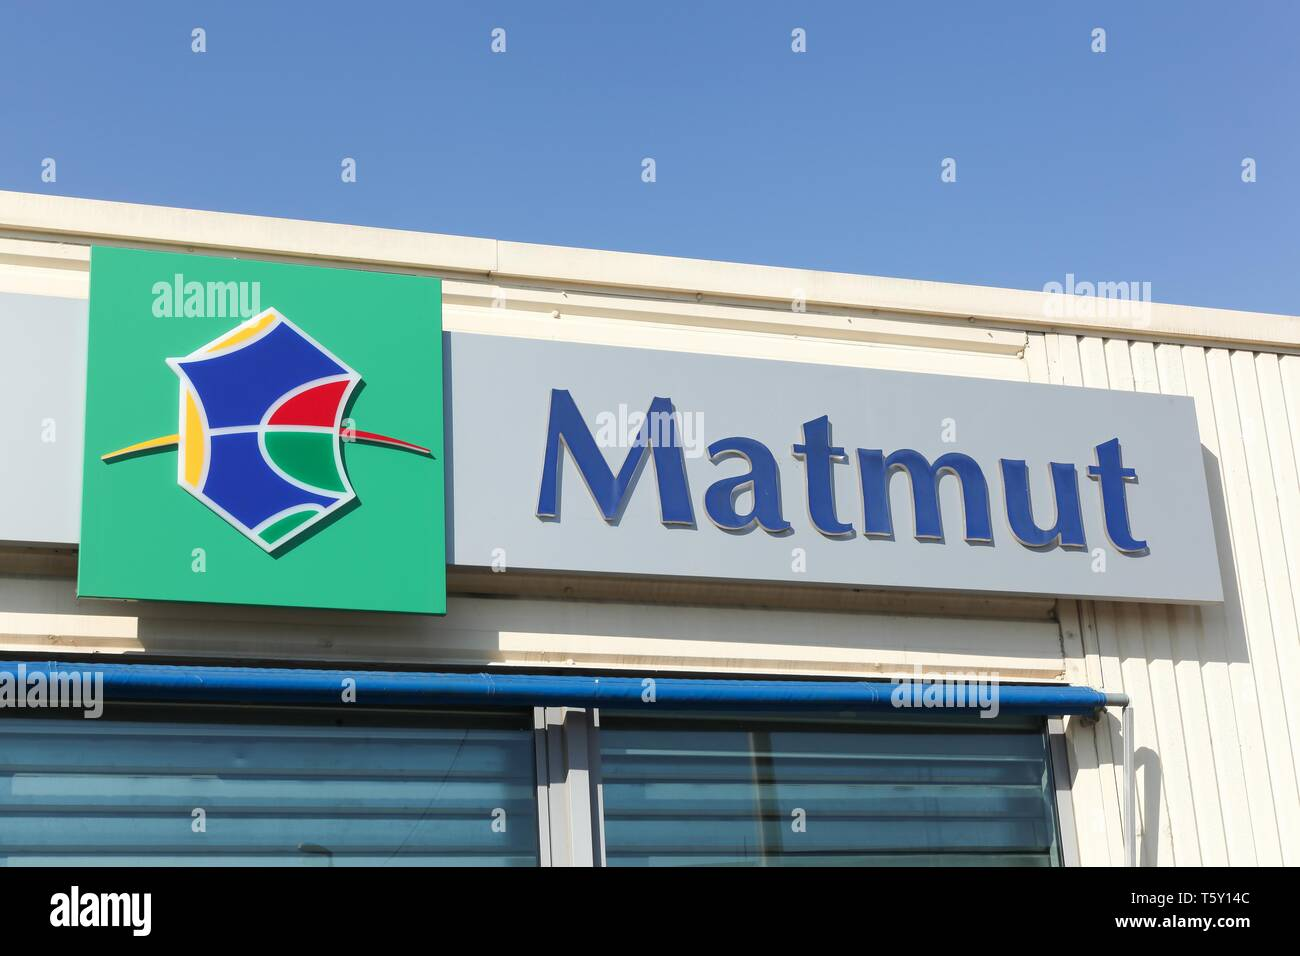 Arles, France - July 4, 2018: Matmut logo on a wall. Matmut group accompanies its policyholders throughout life - Stock Image